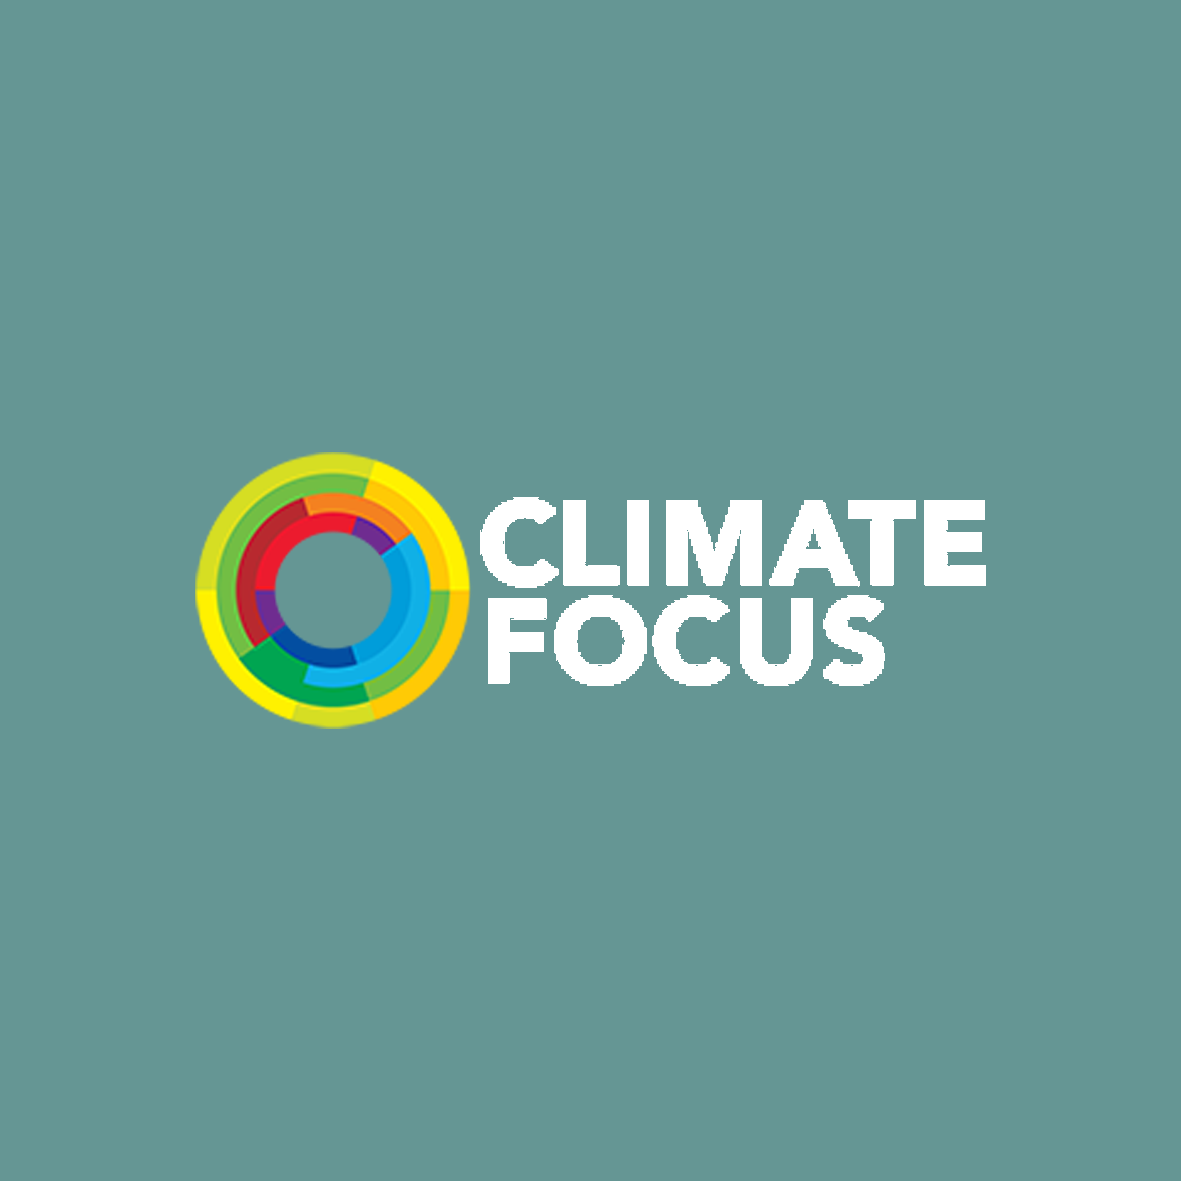 logo climate focus.png